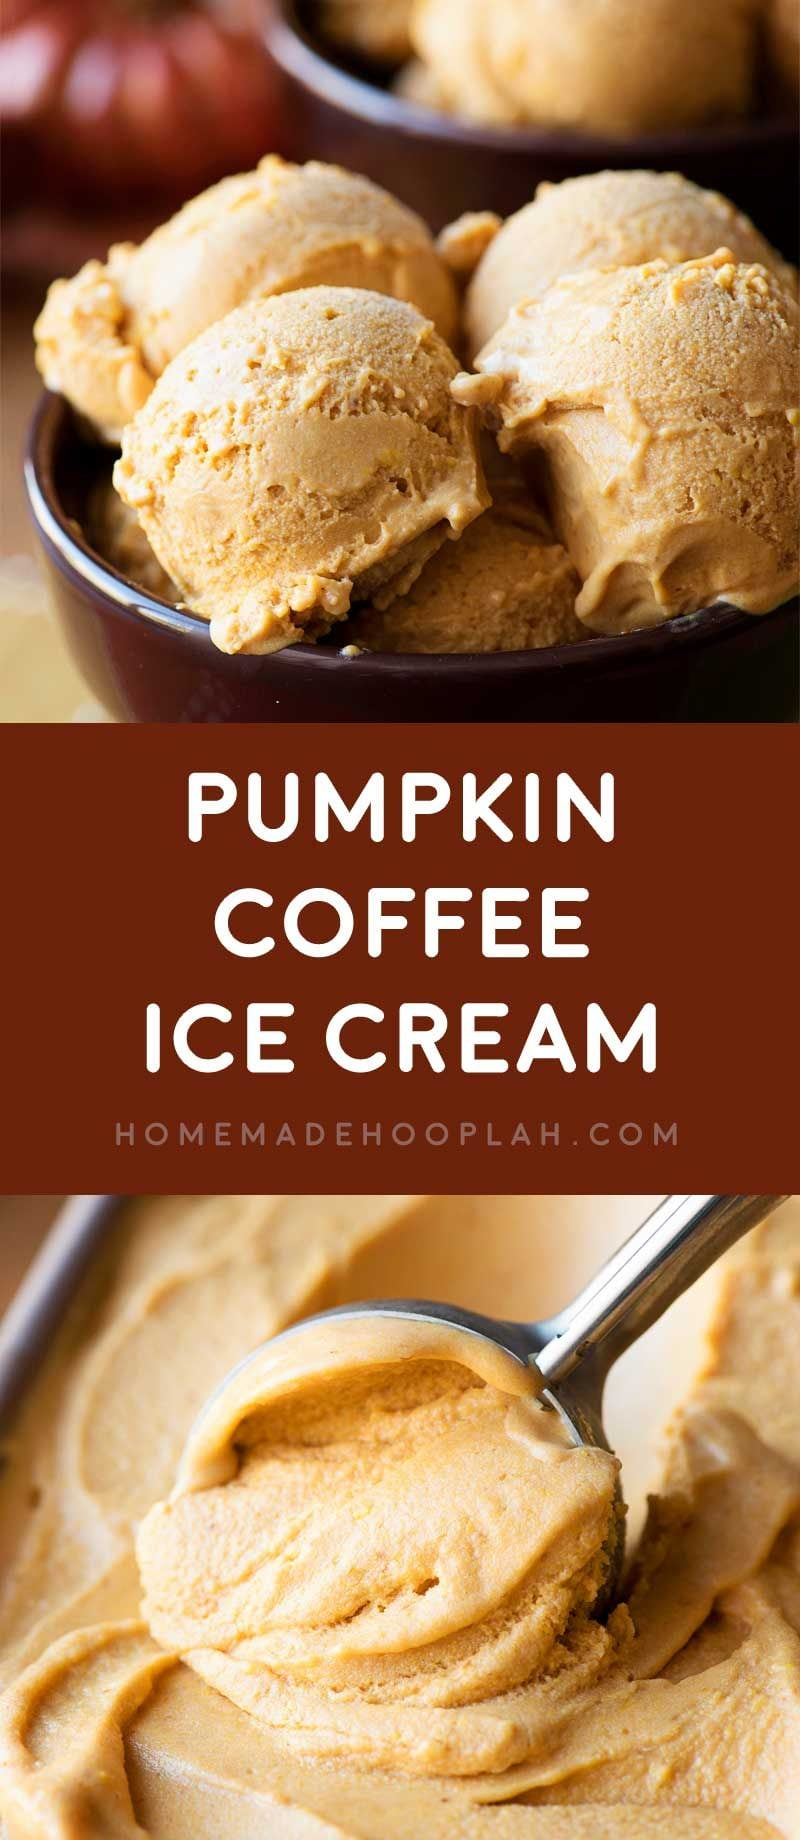 pumpkin coffee ice cream creamy and decadent pumpkin pie spice ice cream with a splash